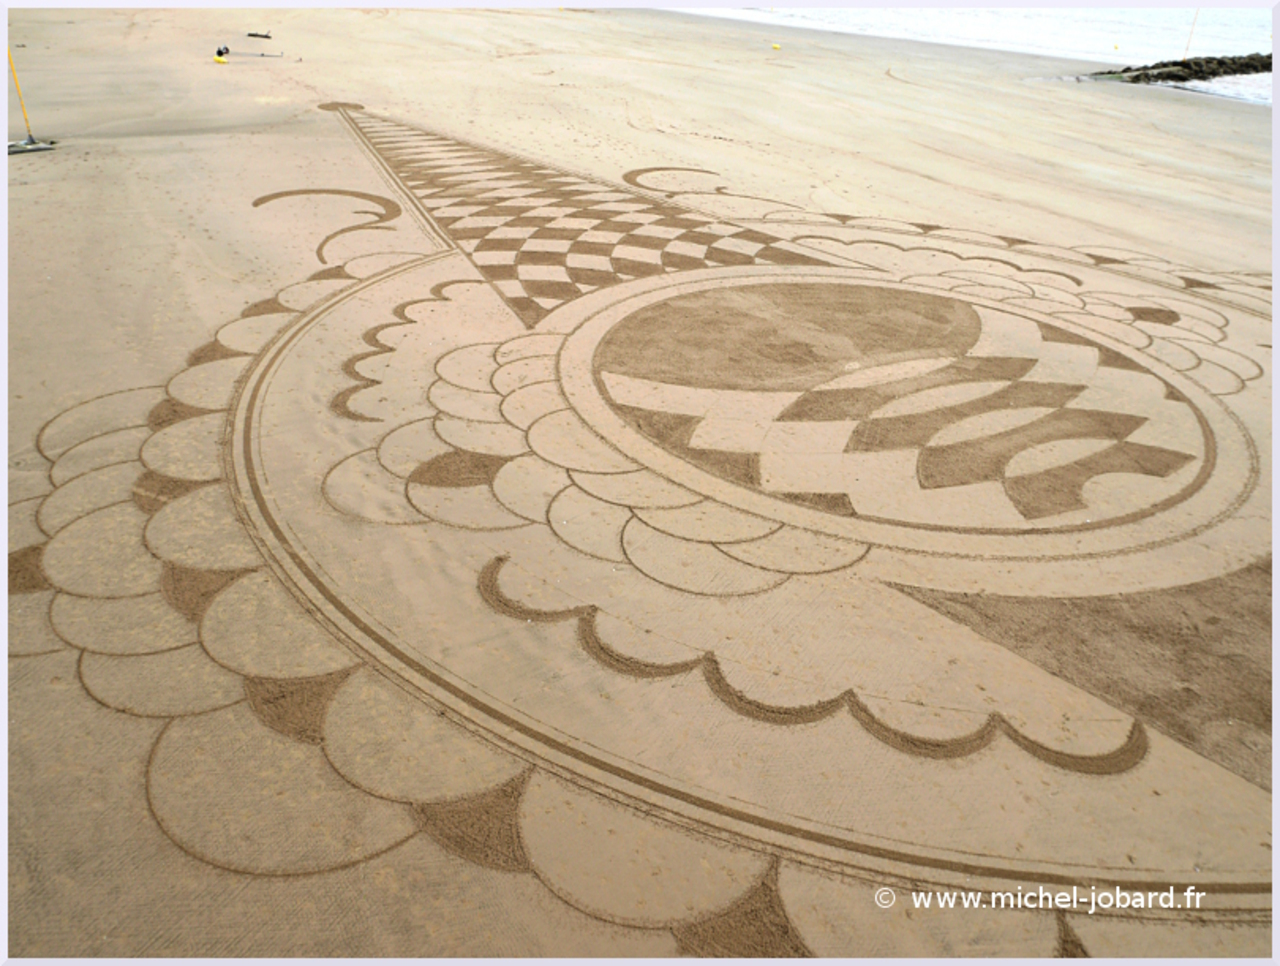 Beach-art-Surfrider-05